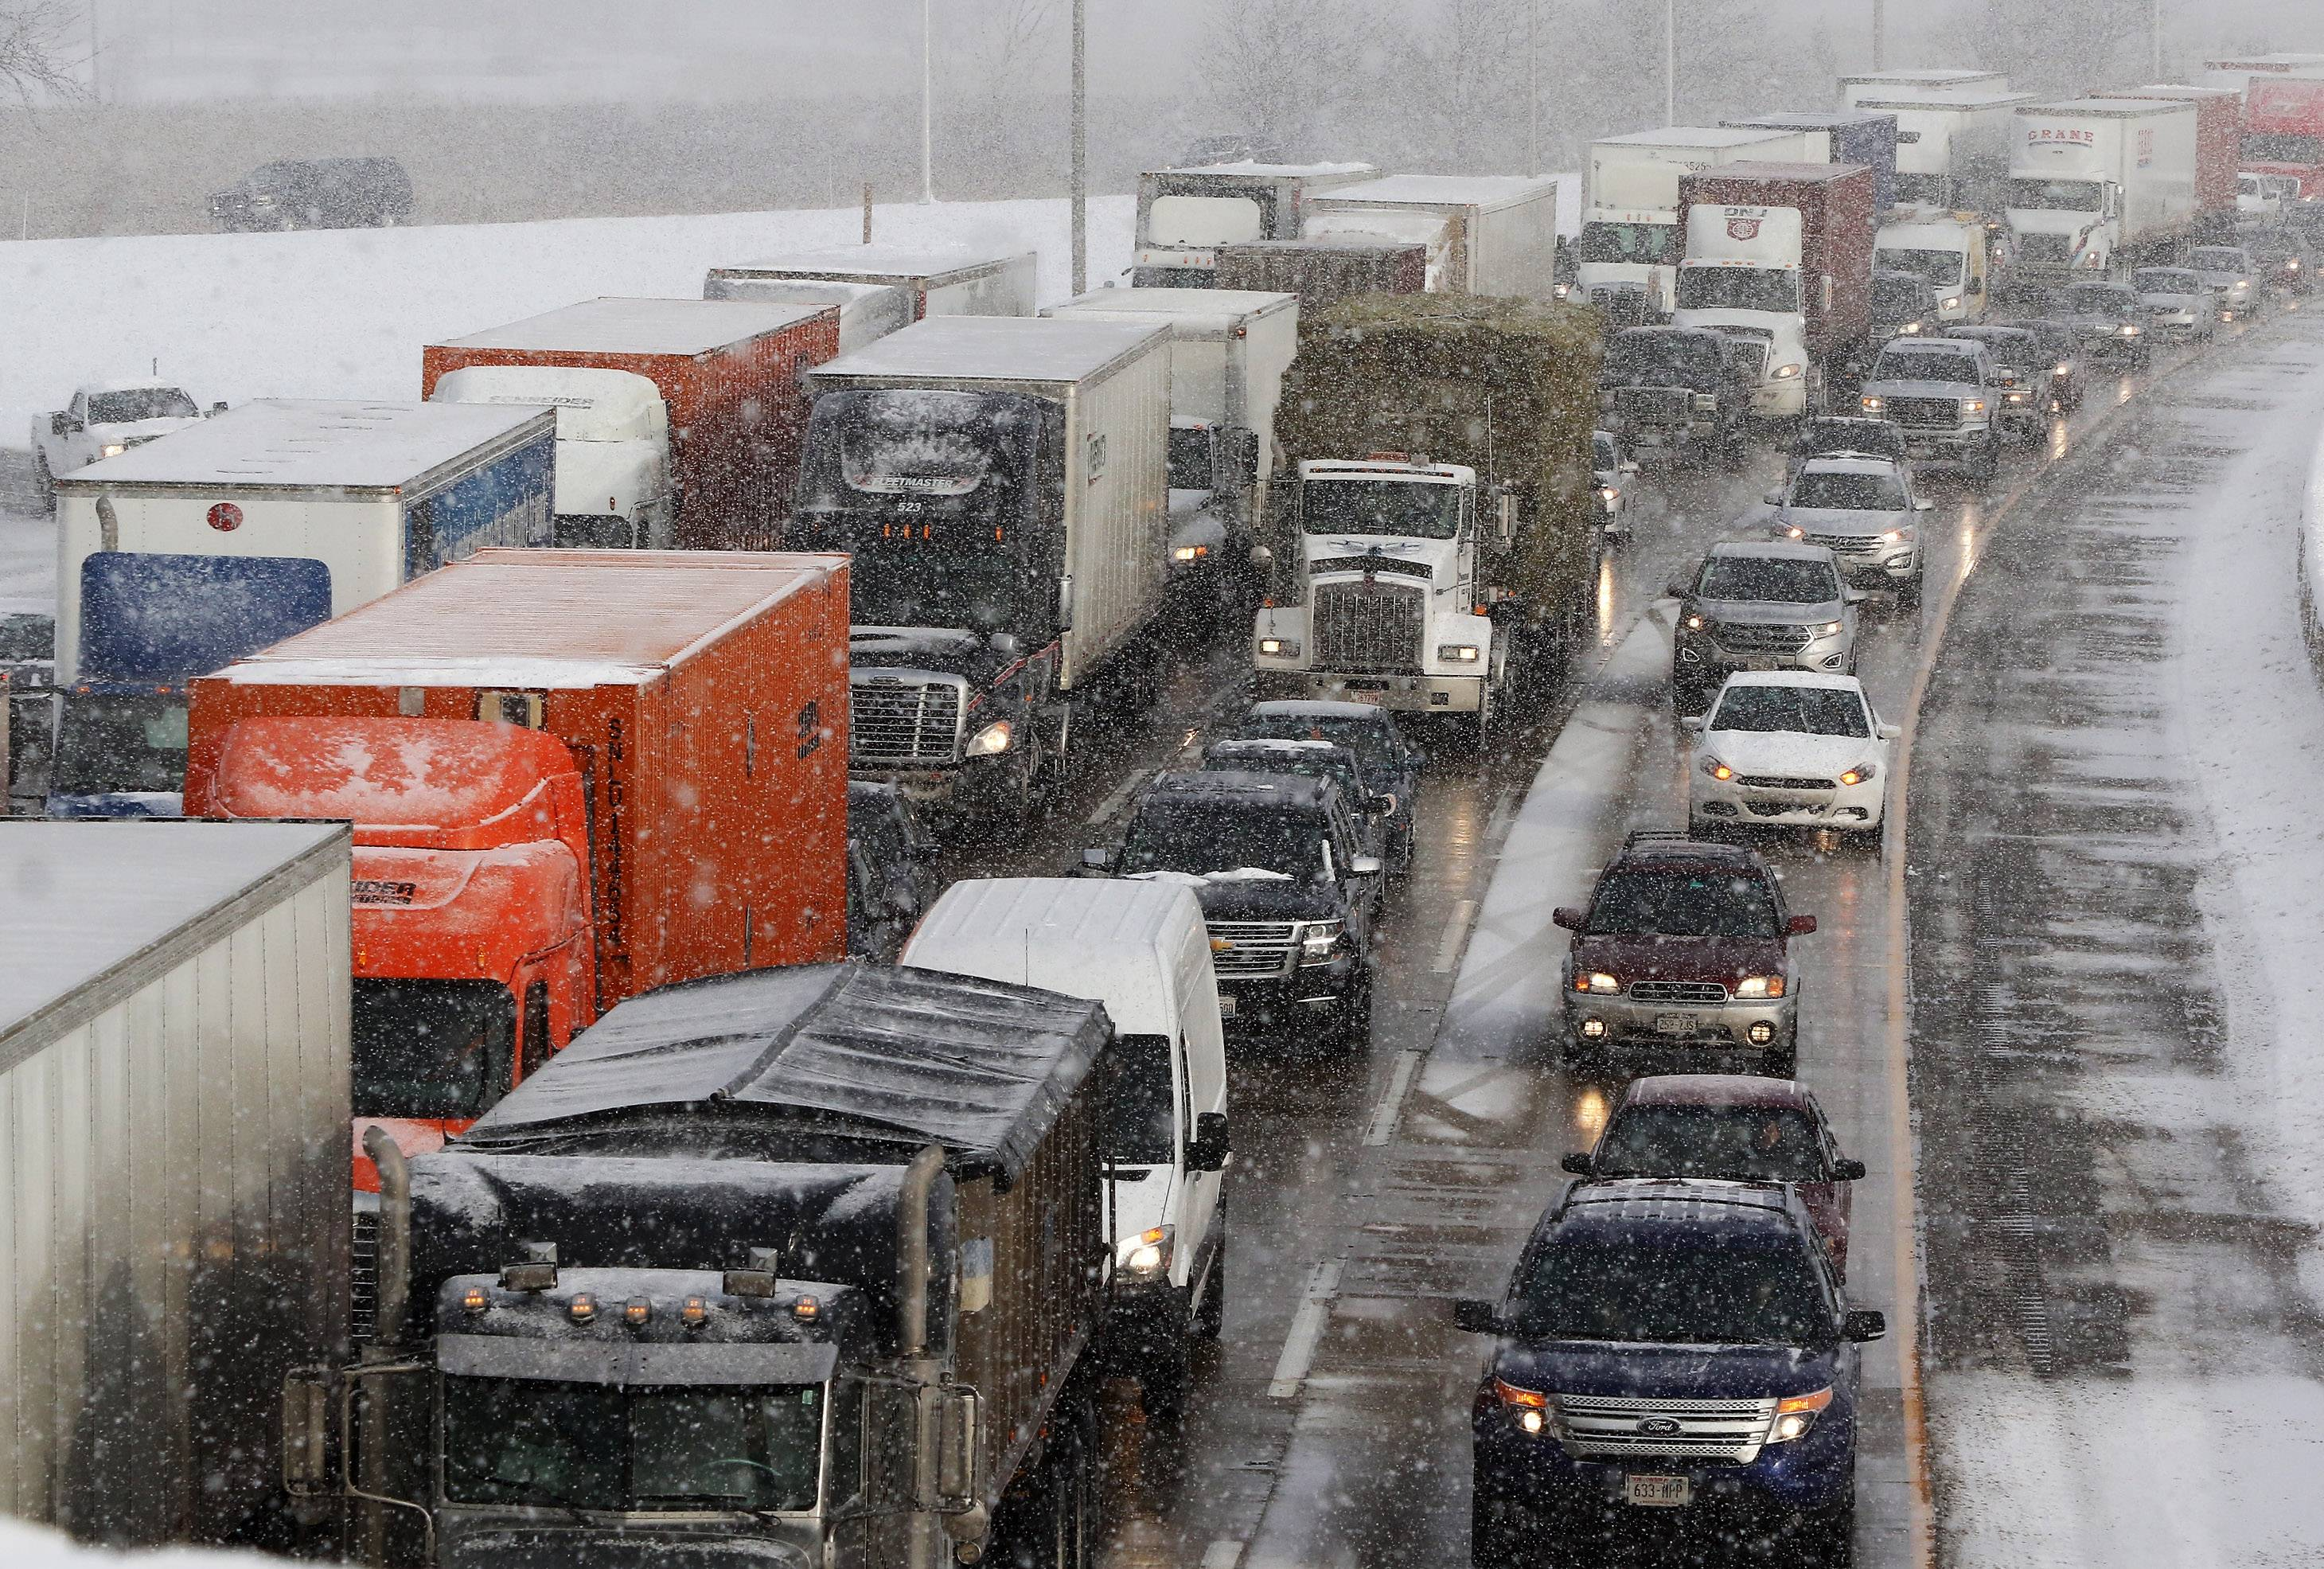 Traffic is backed up along southbound I-94 in Gurnee Tuesday after heavy snow fell overnight creating traffic nightmares in the morning.